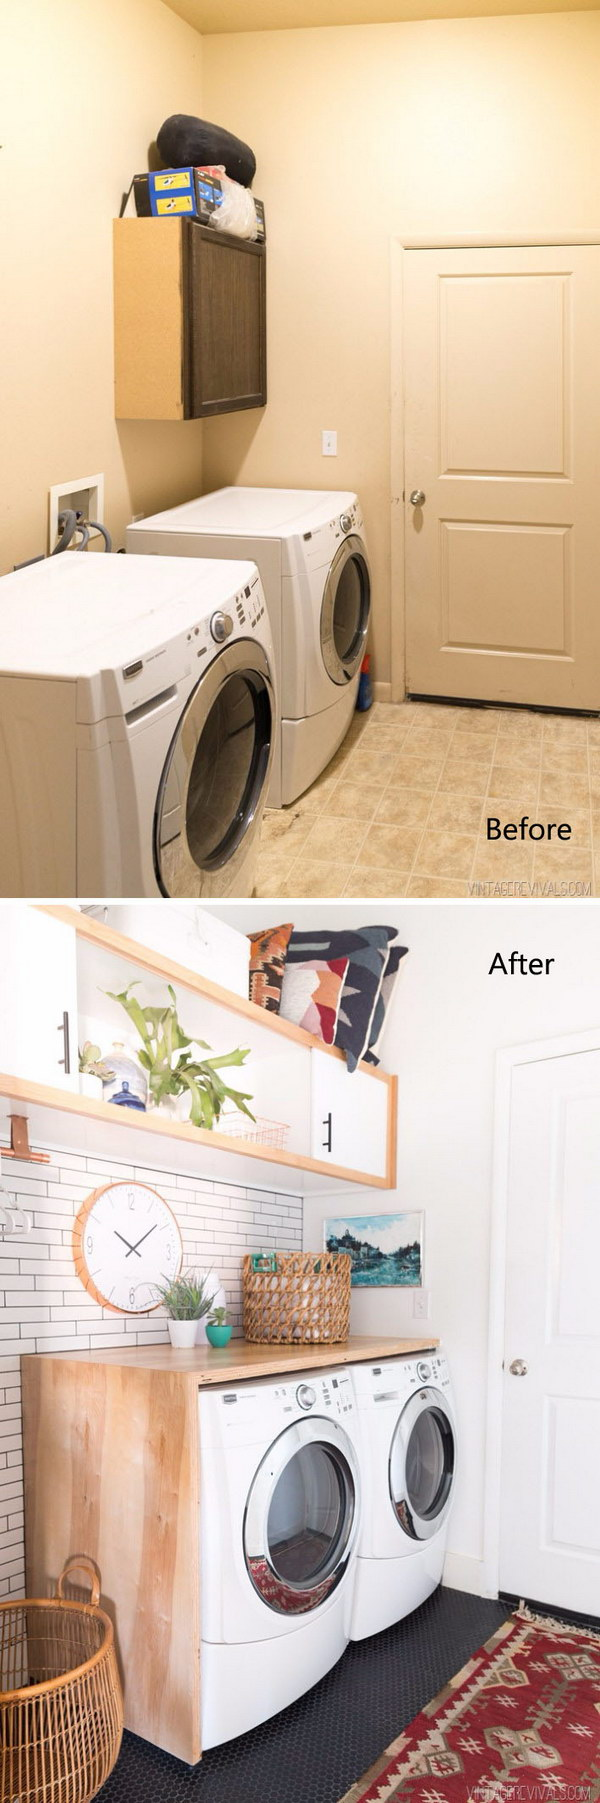 Budget Laundry Room Makeover Reveal With White Subway Tile Black Penny Floors And Wall Cabinet